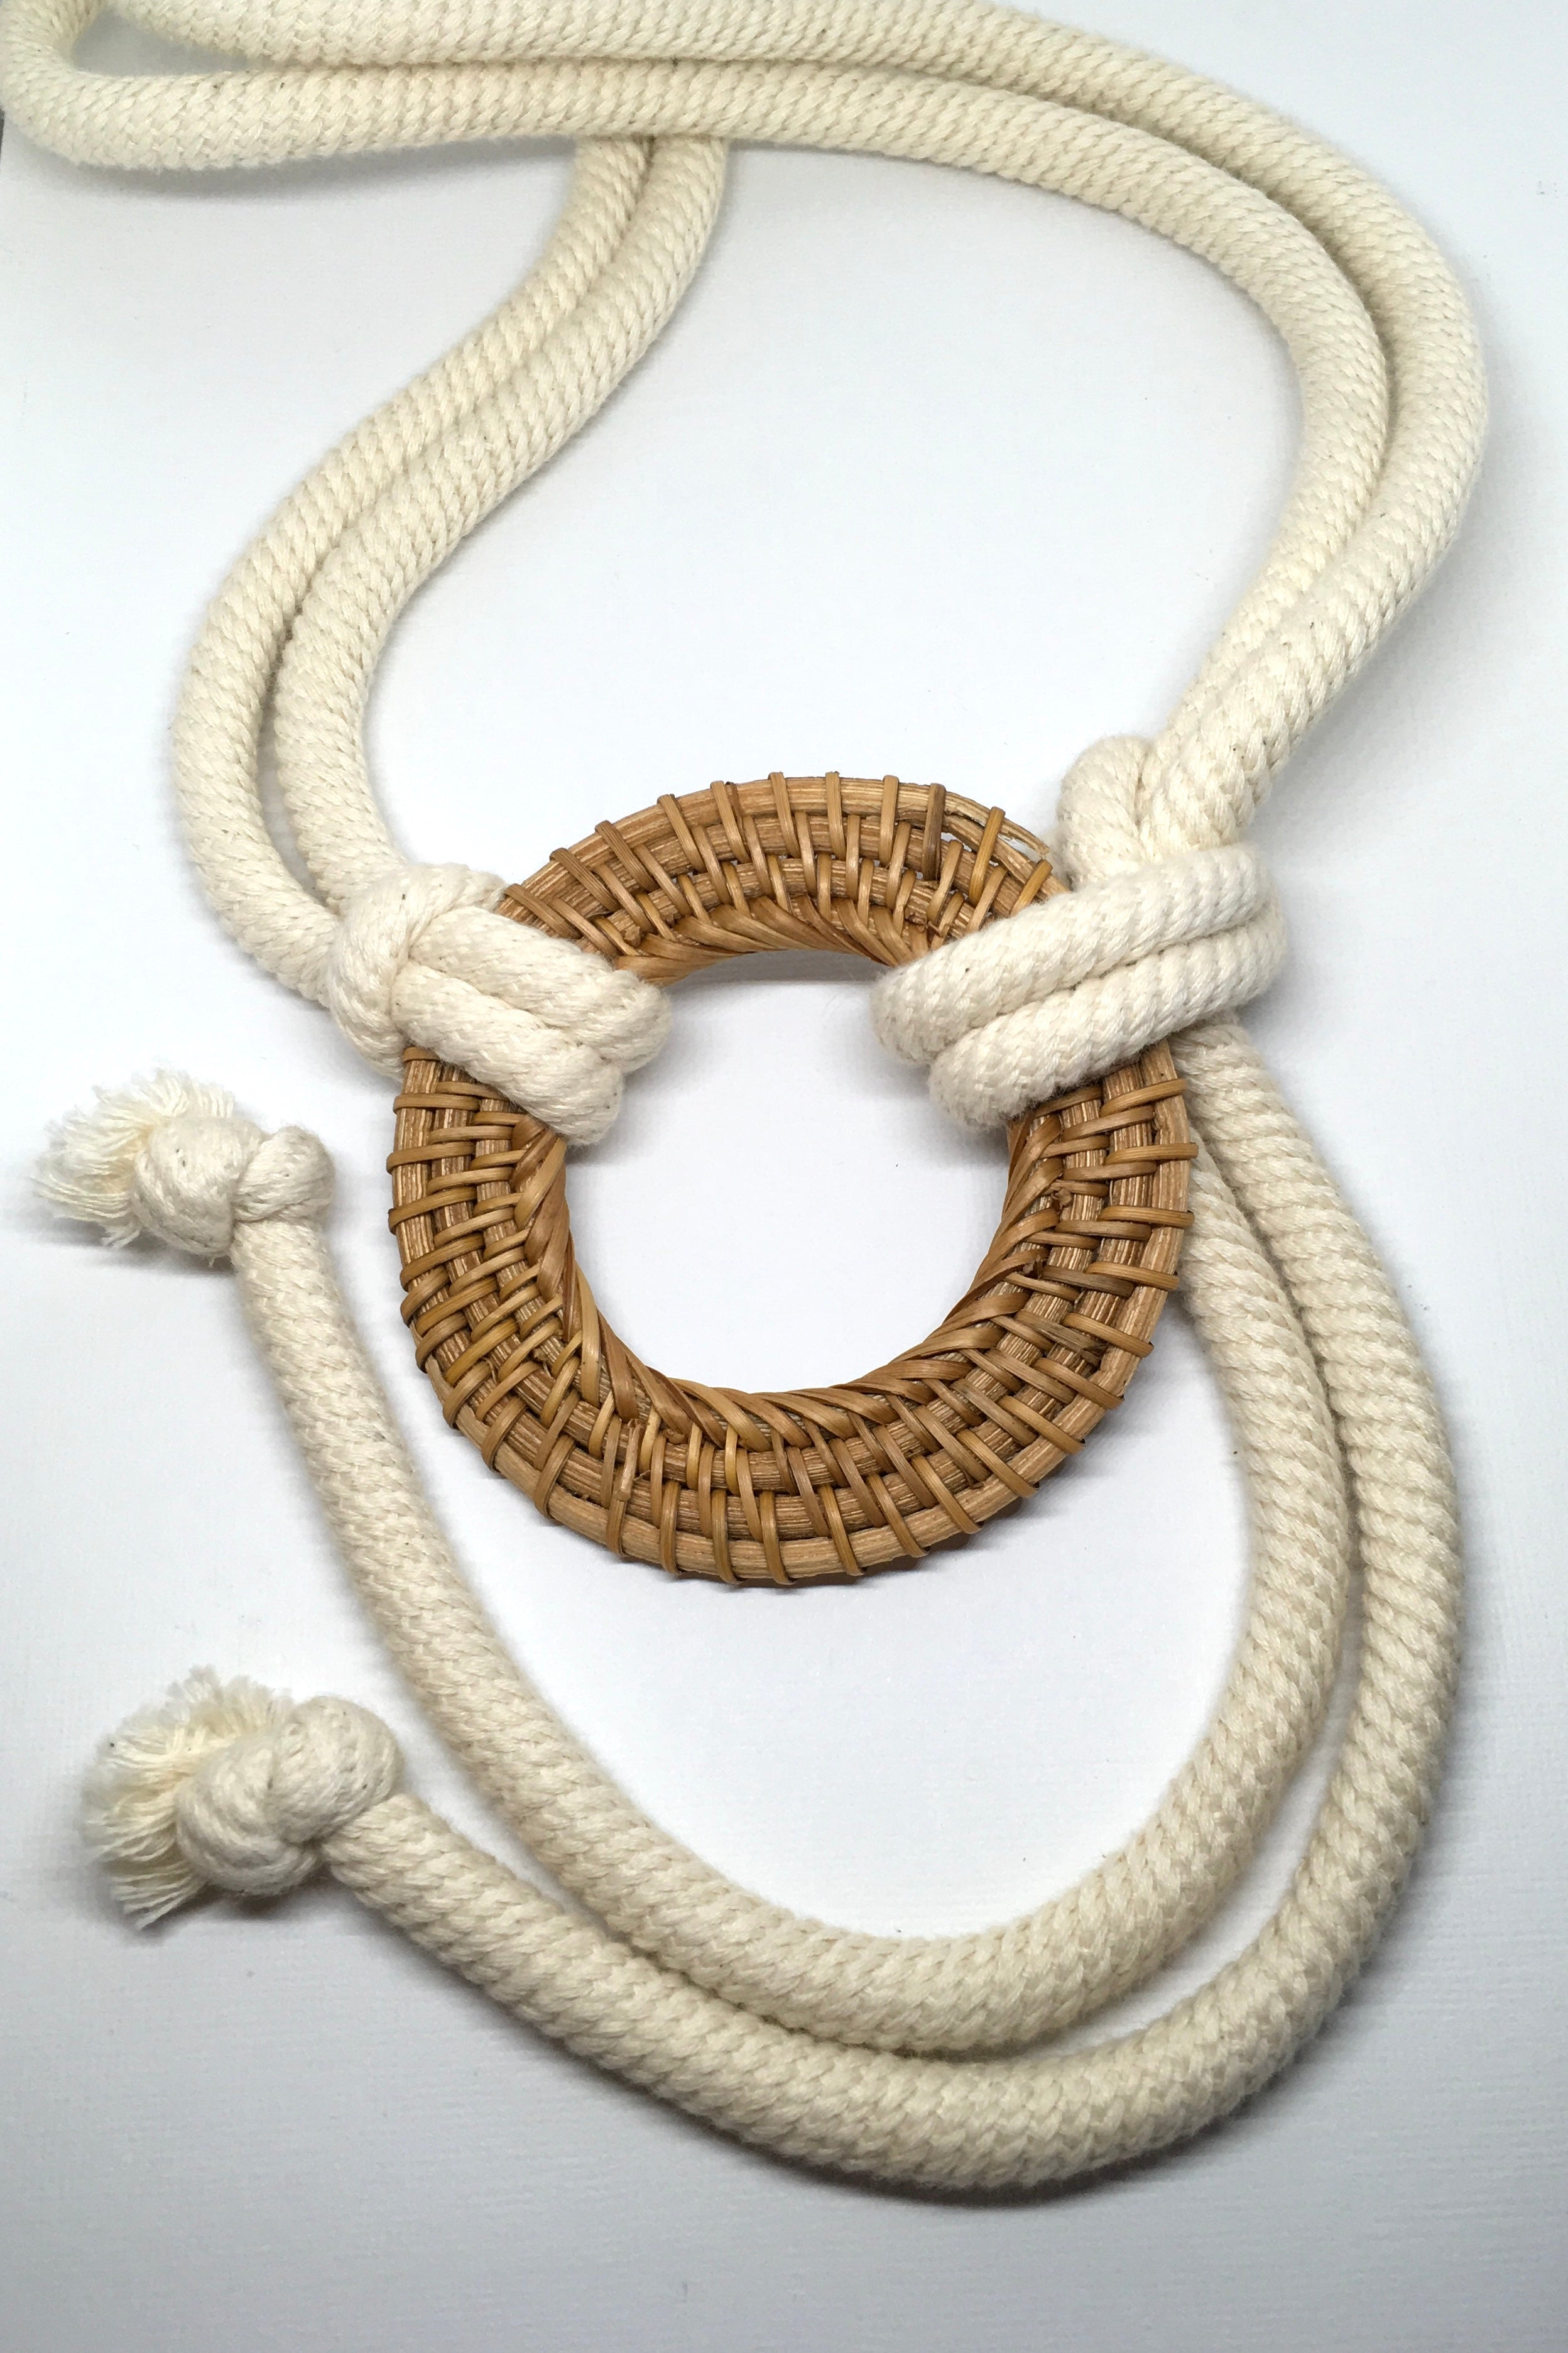 A thick cream rope with a natural tan rattan belt loop